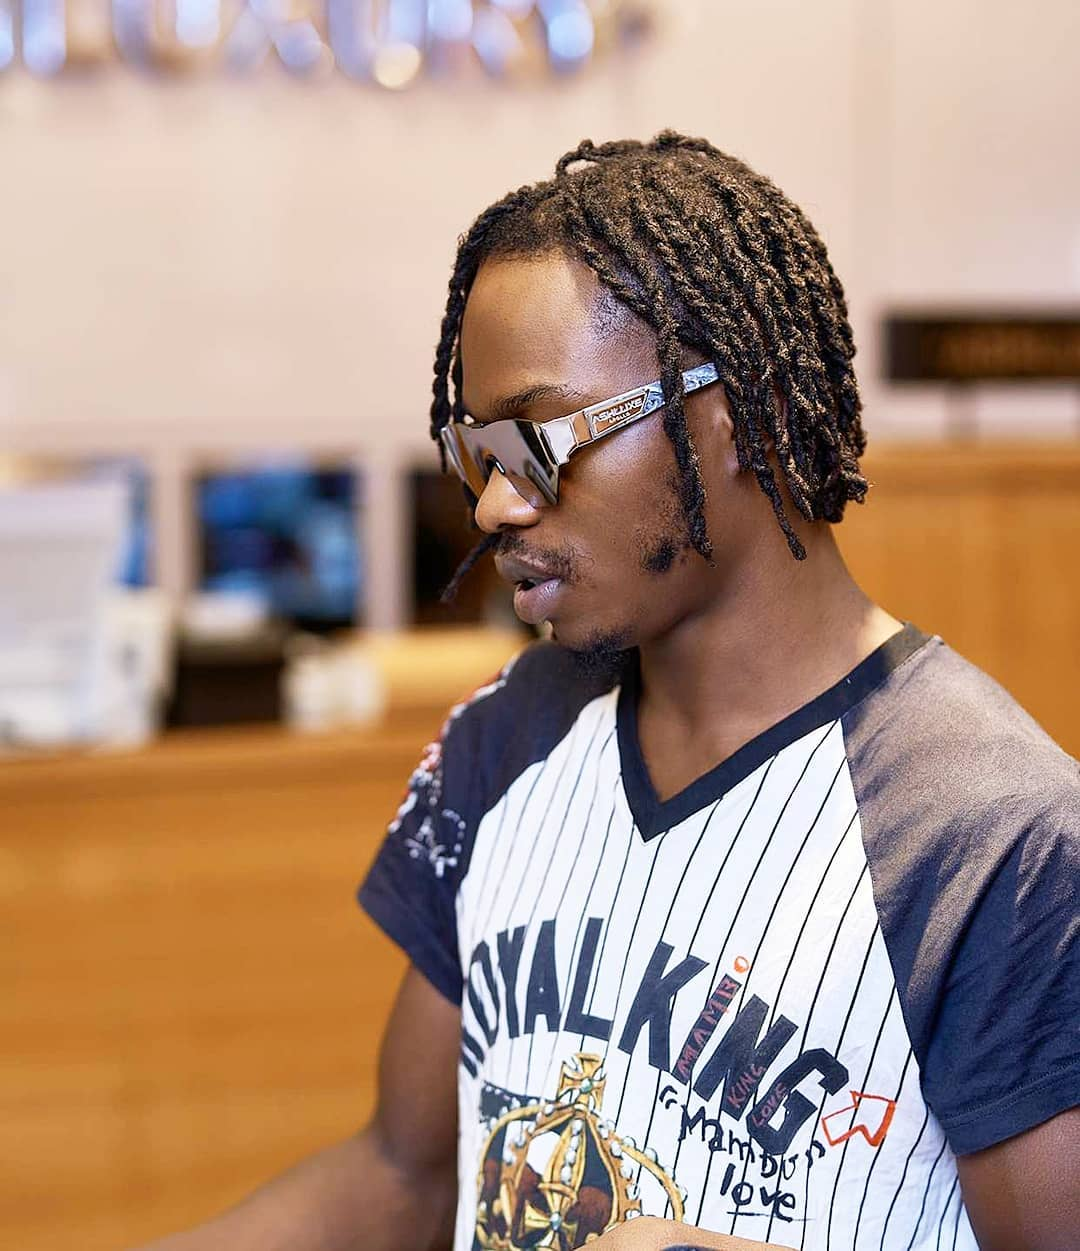 Naira Marley shares a video of him having a good time with Tyson Fury